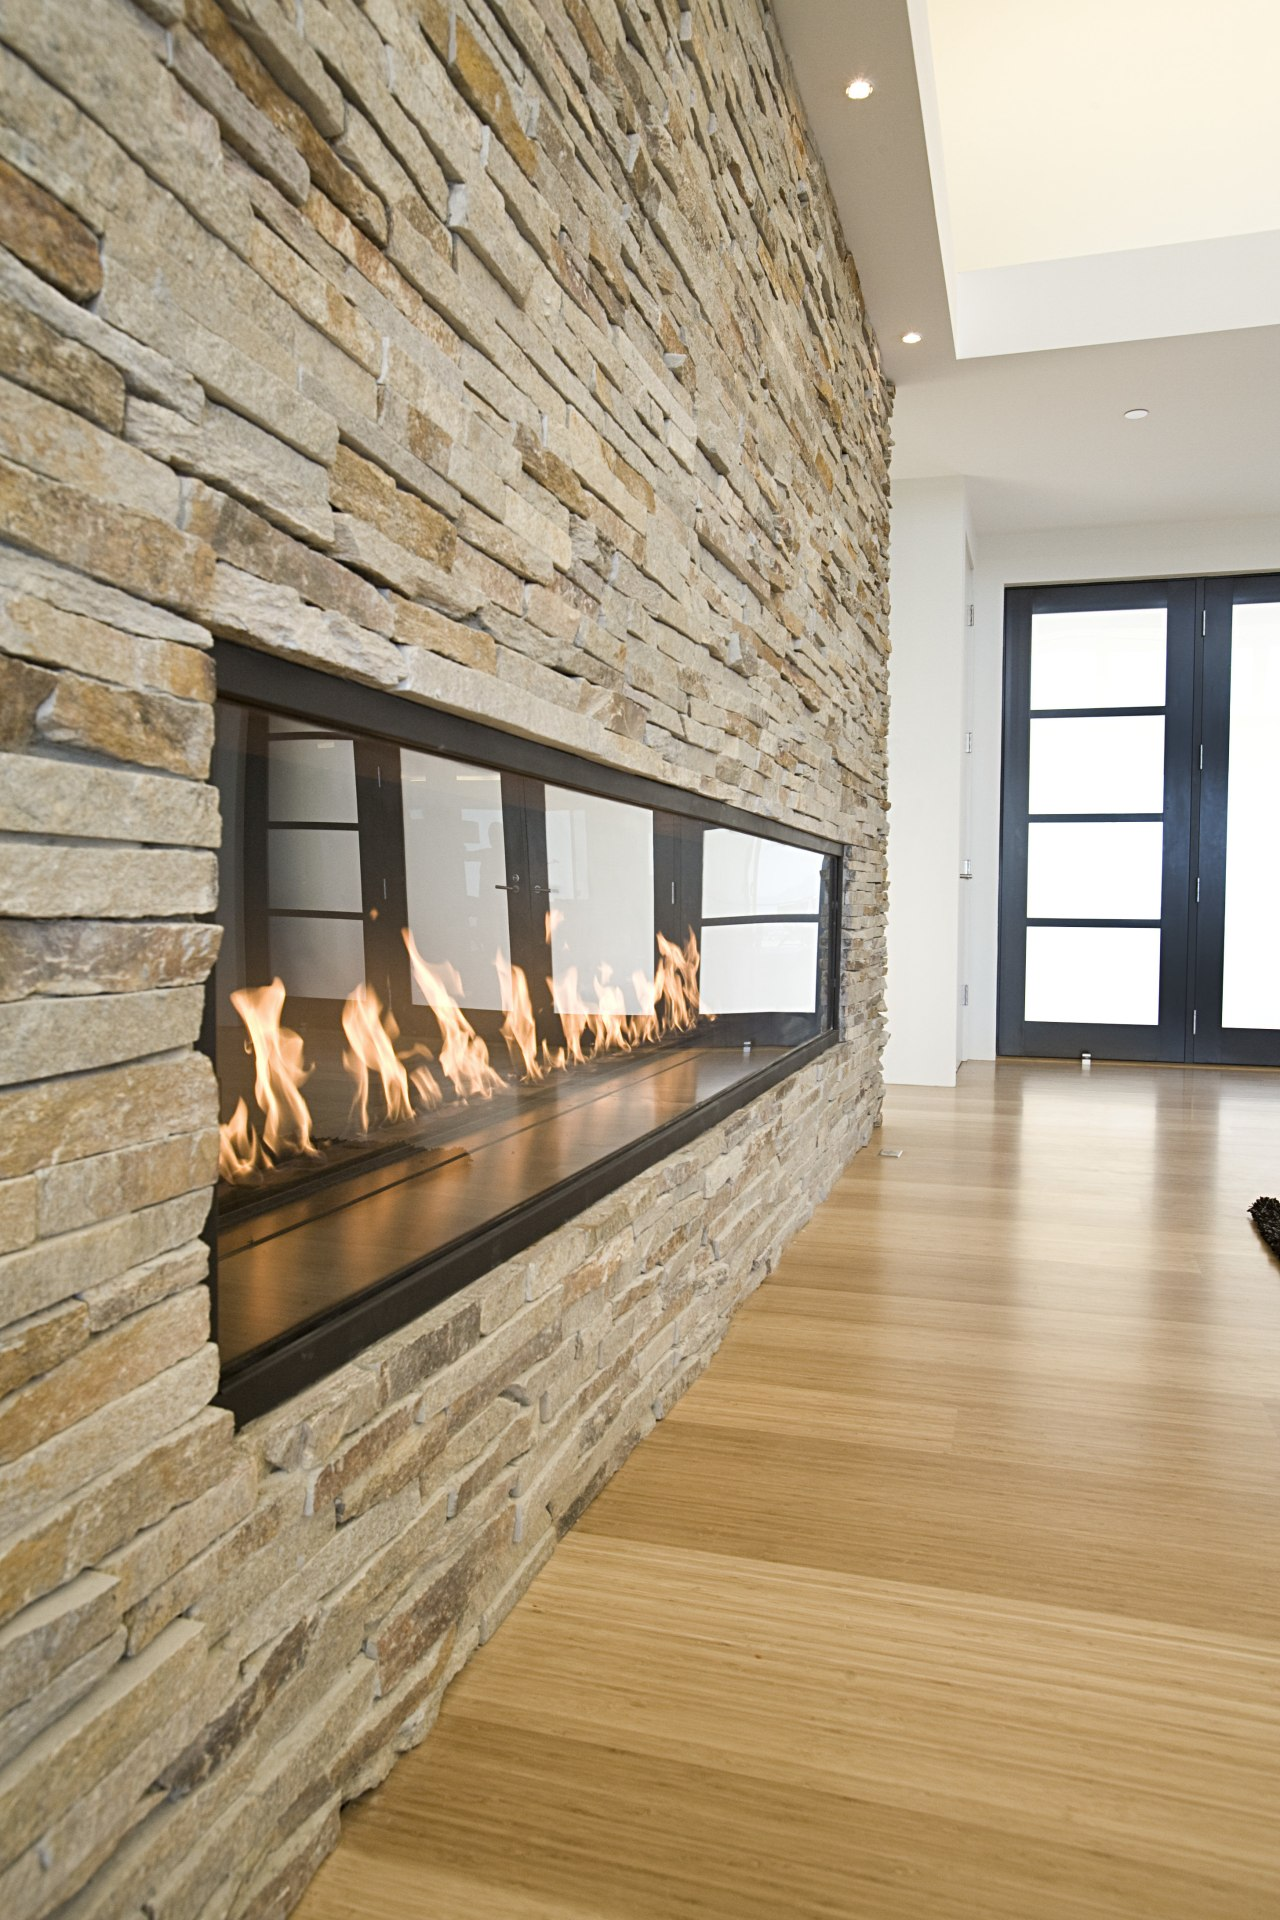 This modern home features a soaring natural stone fireplace, floor, flooring, hardwood, hearth, interior design, laminate flooring, living room, wood, wood flooring, gray, orange